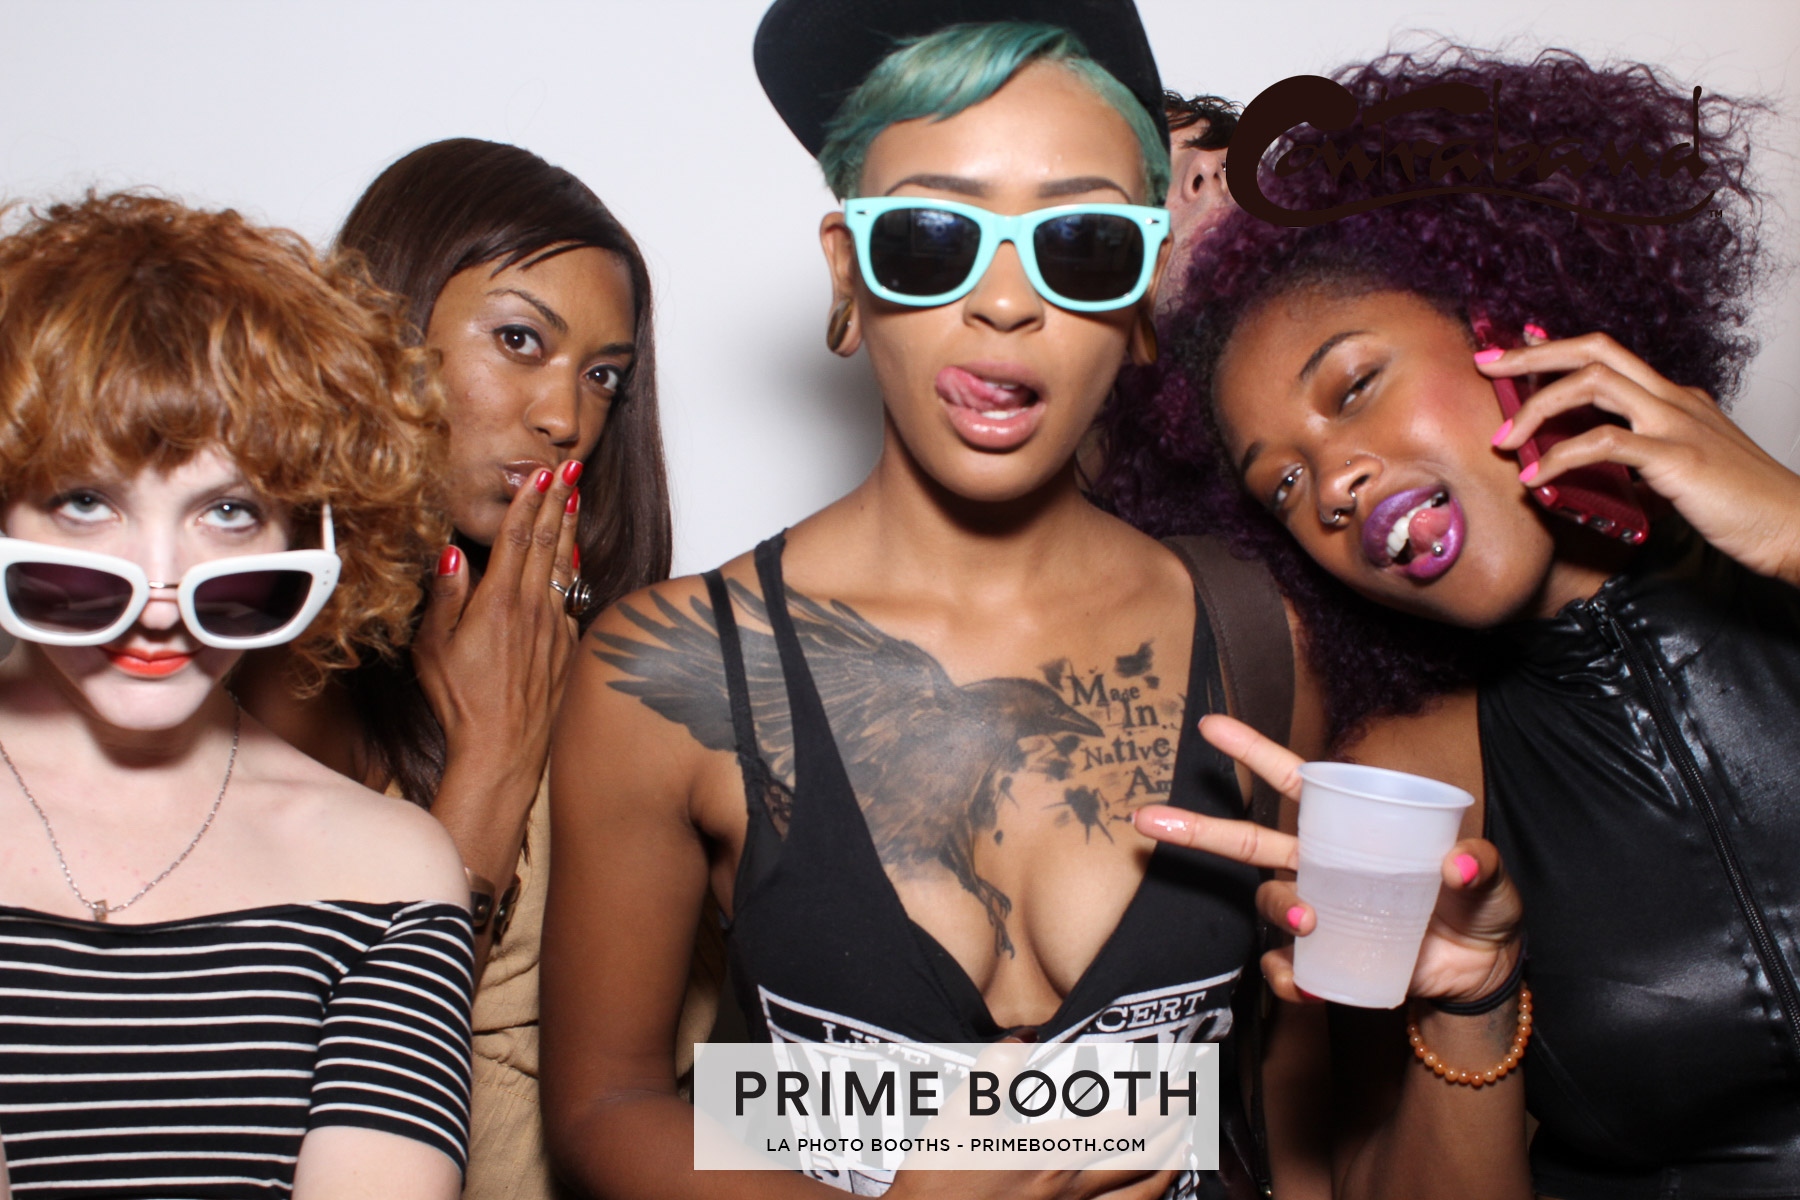 contraband-hats-celebrity-prime-booth-388